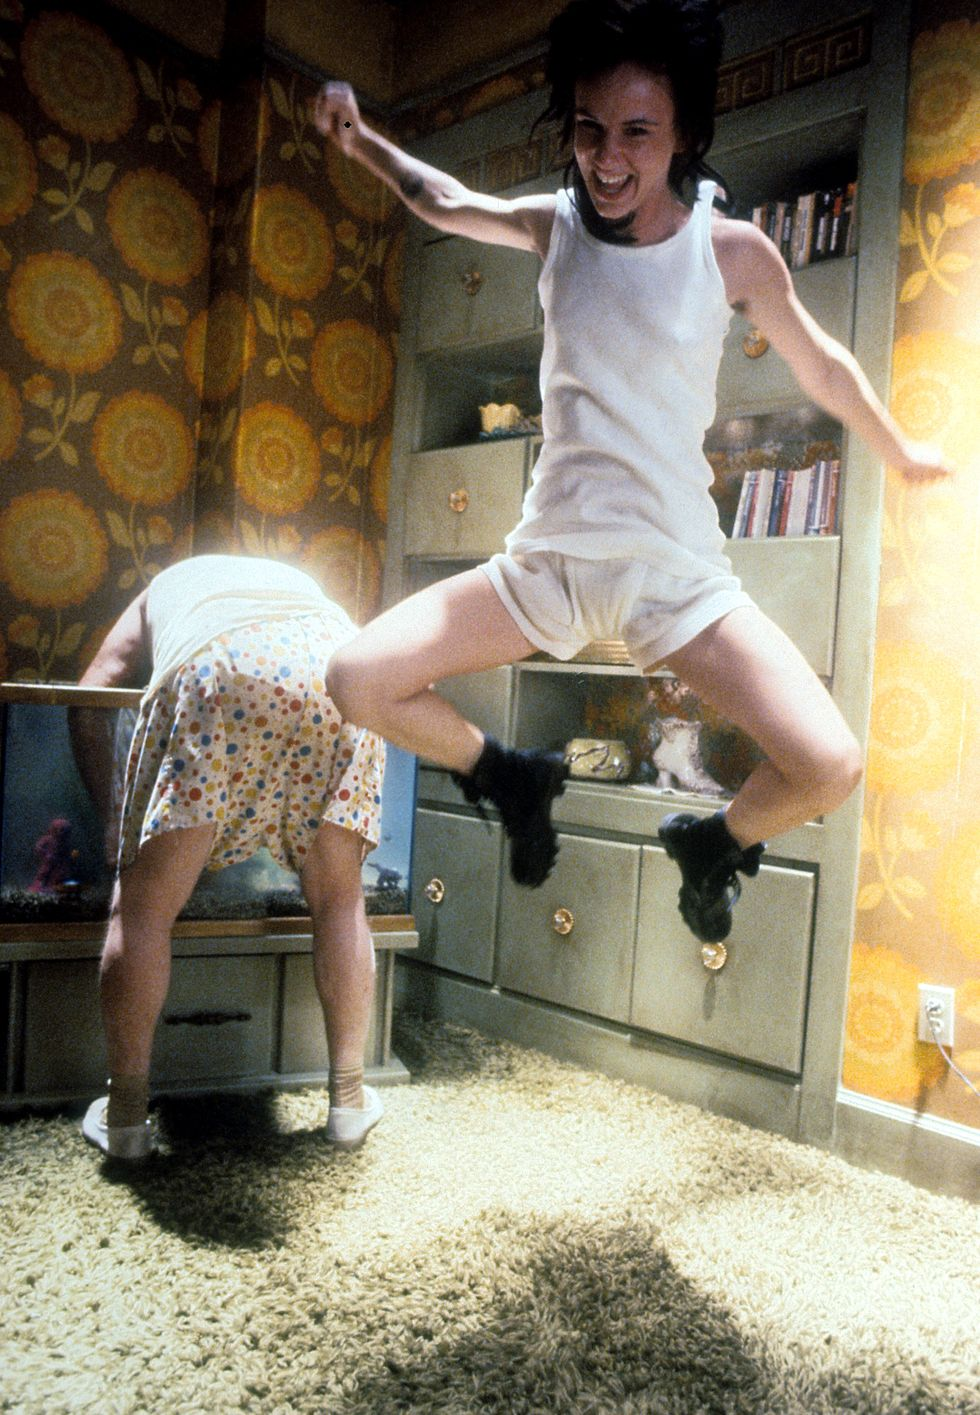 Natural Born Killers (1994) Juliette Lewis jumps in a scene during Natural Born Killers. The movie was a huge hit, grossing over $50 million in theaters.